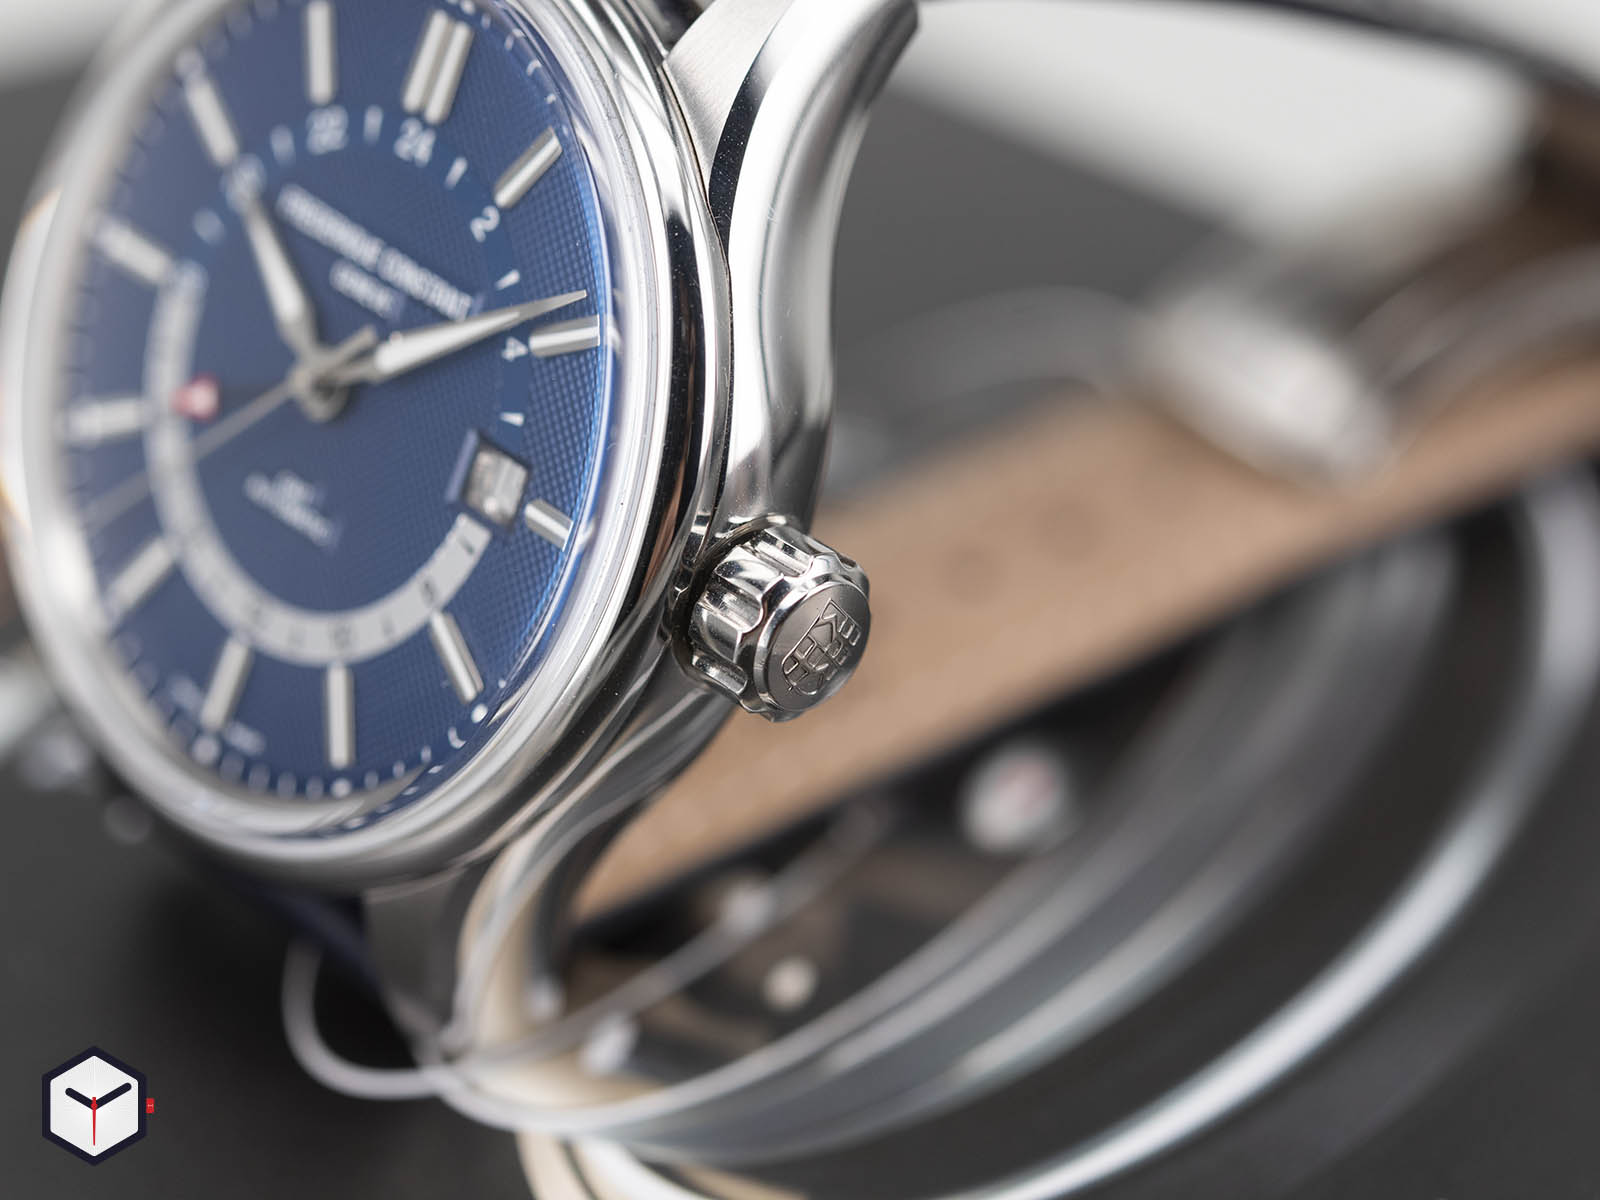 fc-350nt4h6-frederique-constant-yacht-timer-gmt-5.jpg